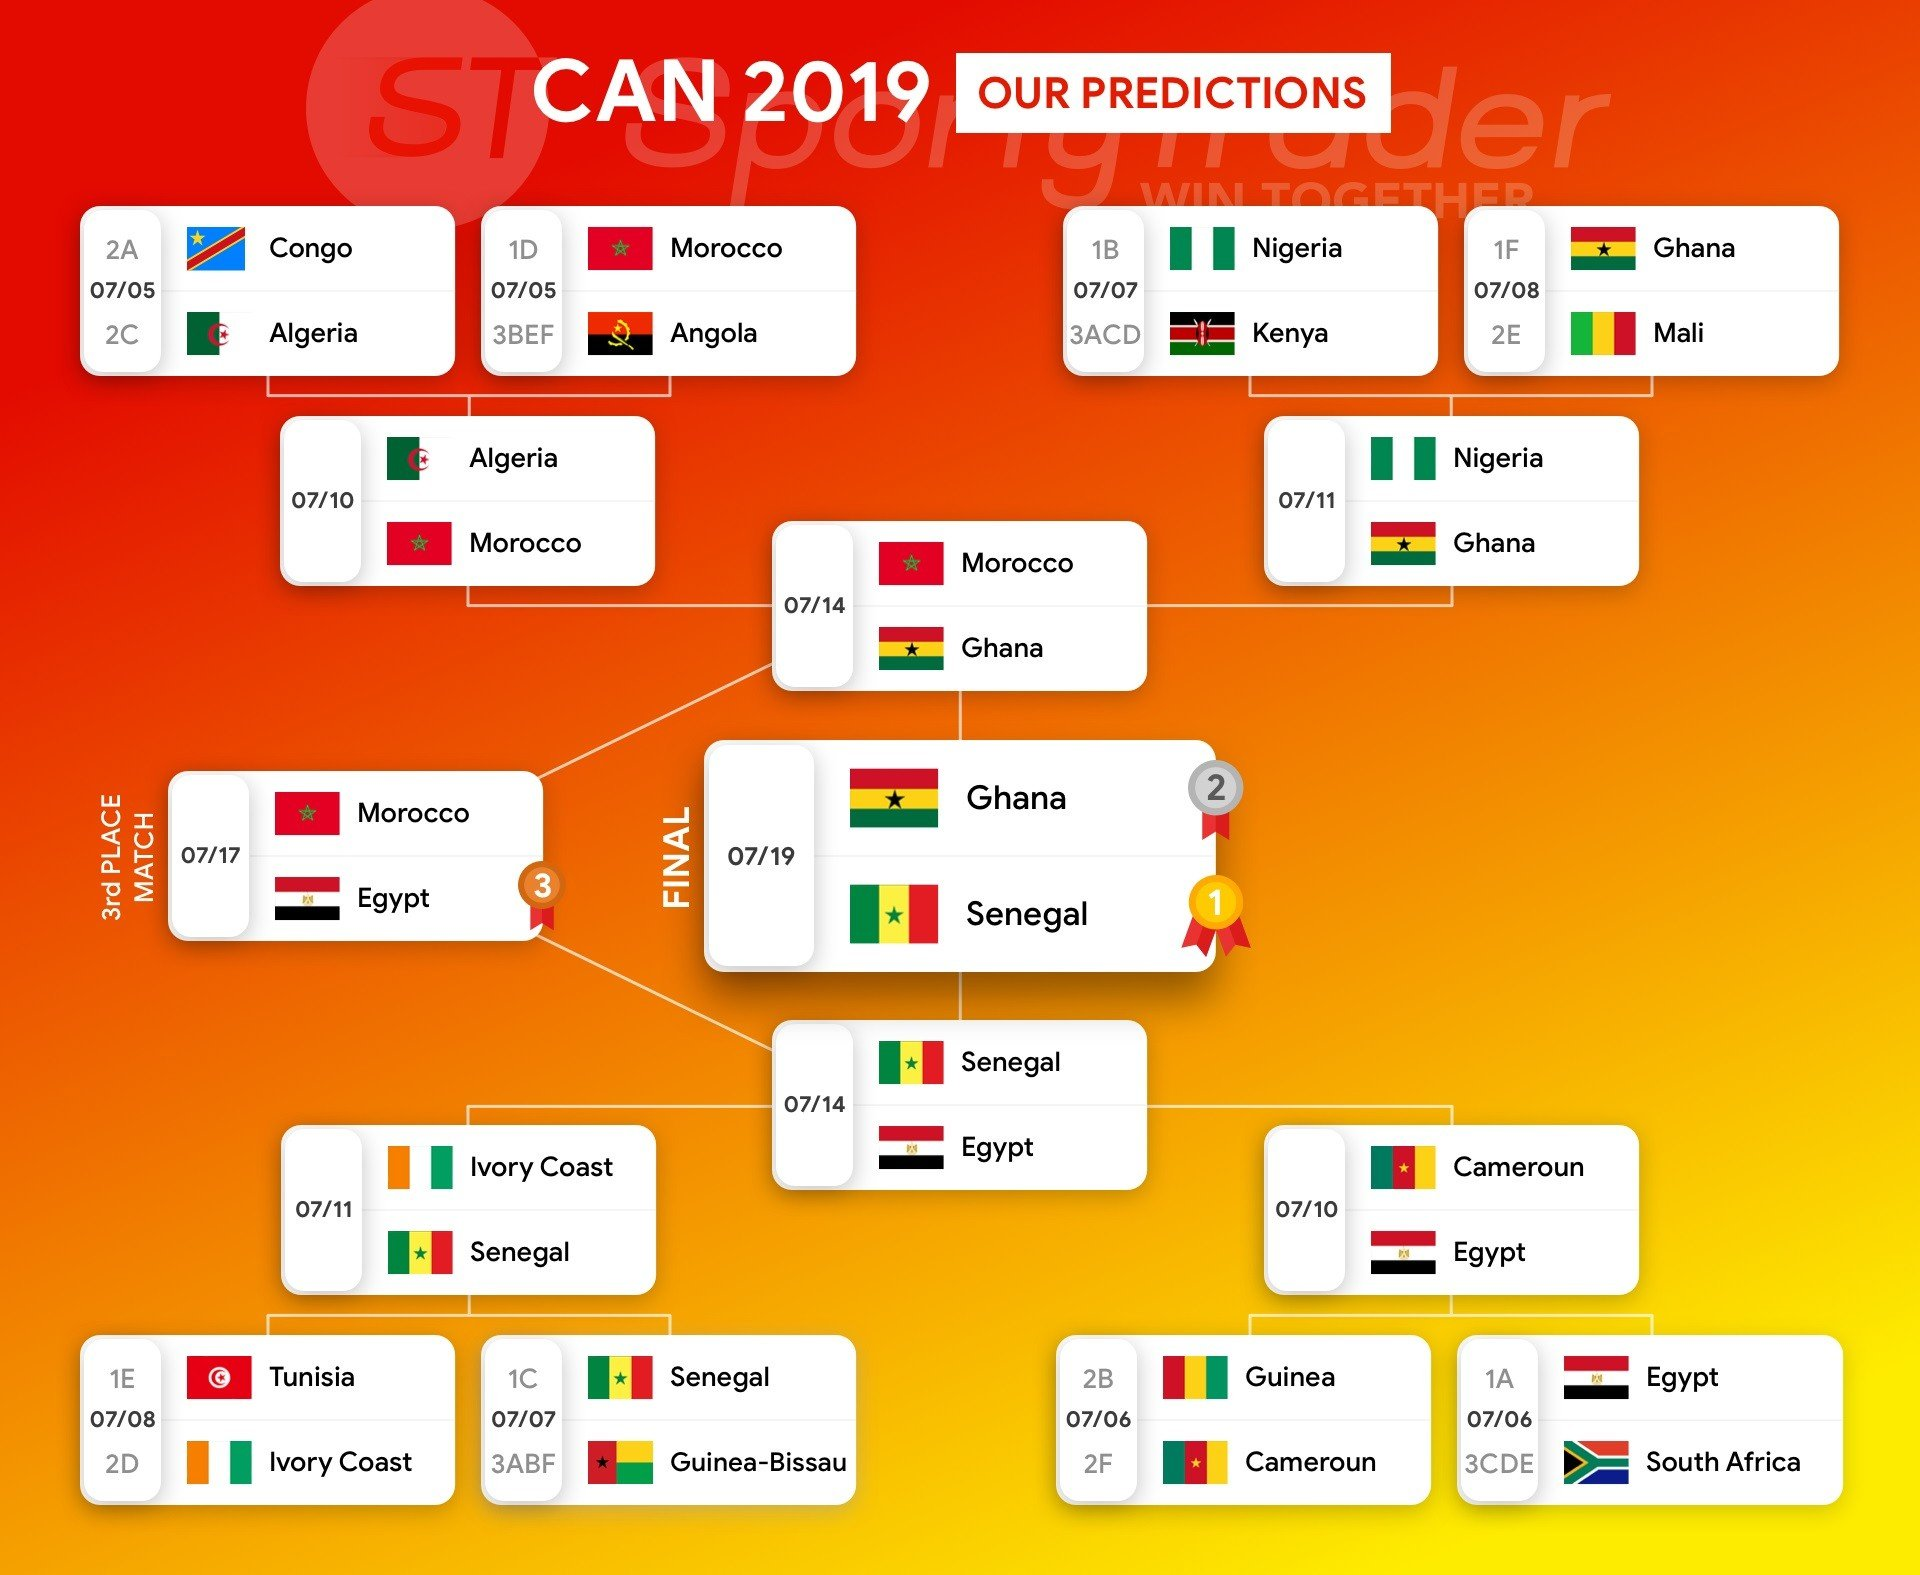 CAN 2019 Predictions